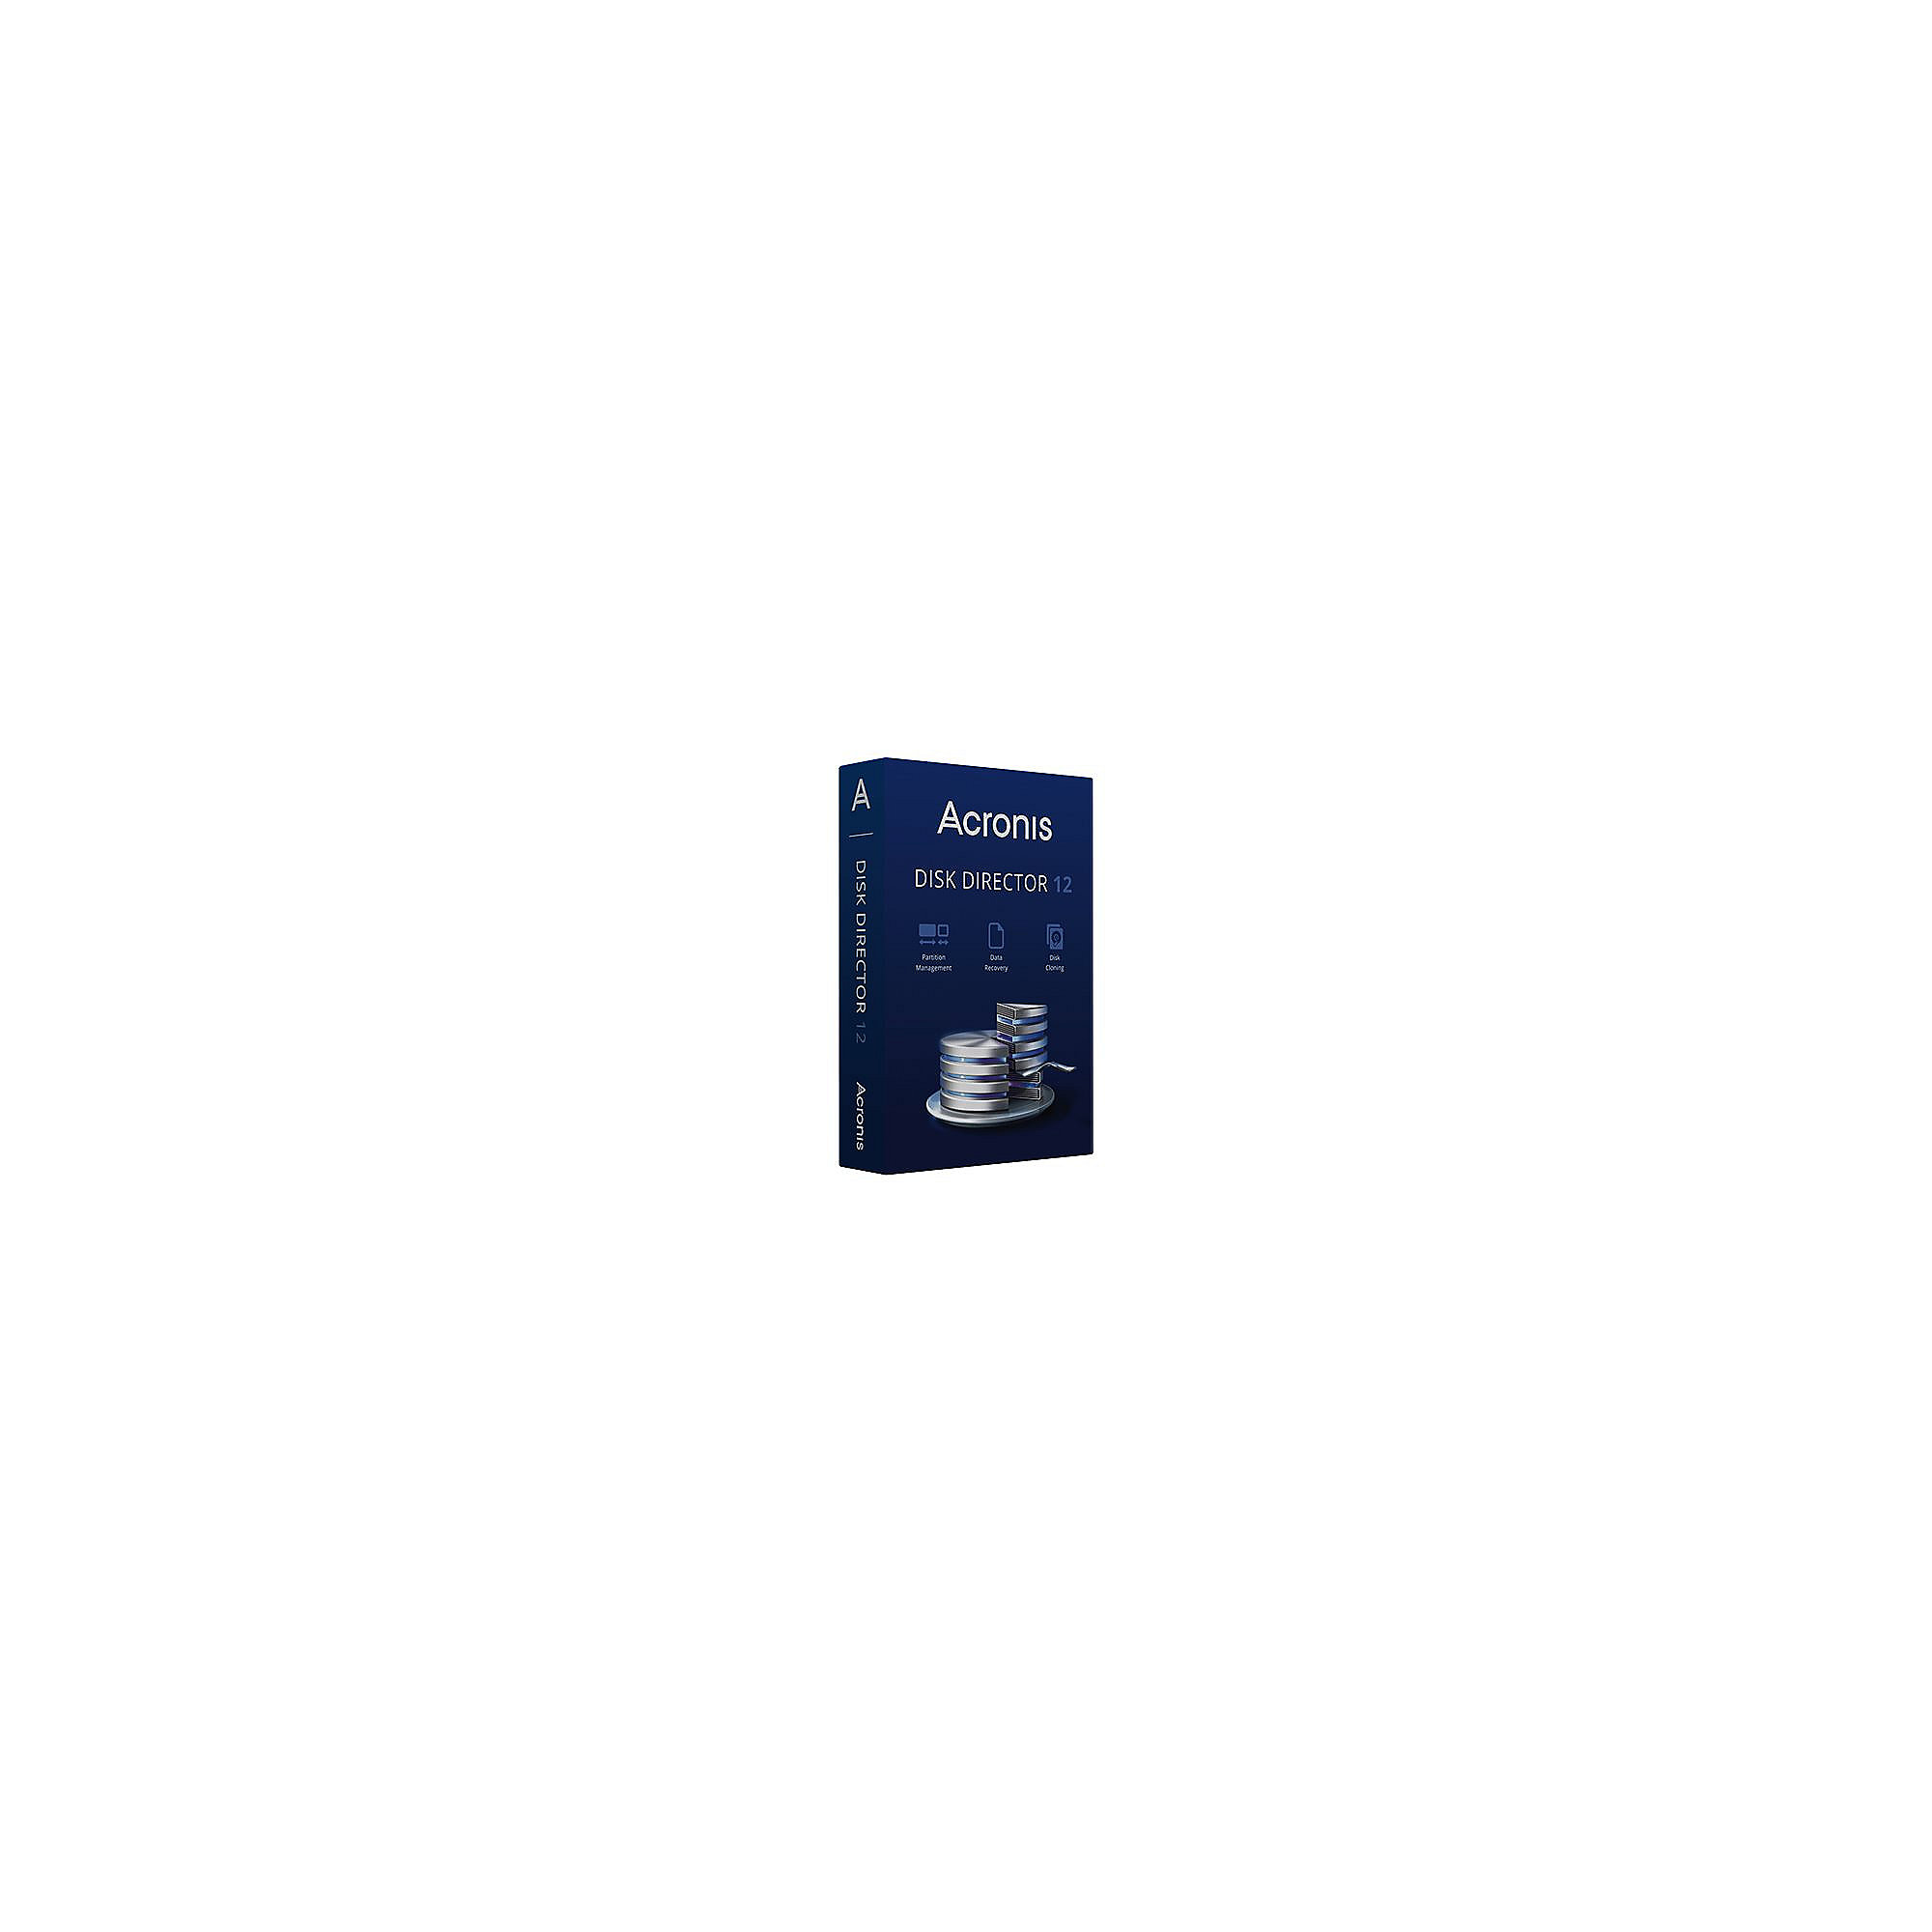 Acronis Disk Director 11 Advanced Server, 1-3 User Lizenz + MNT AAS